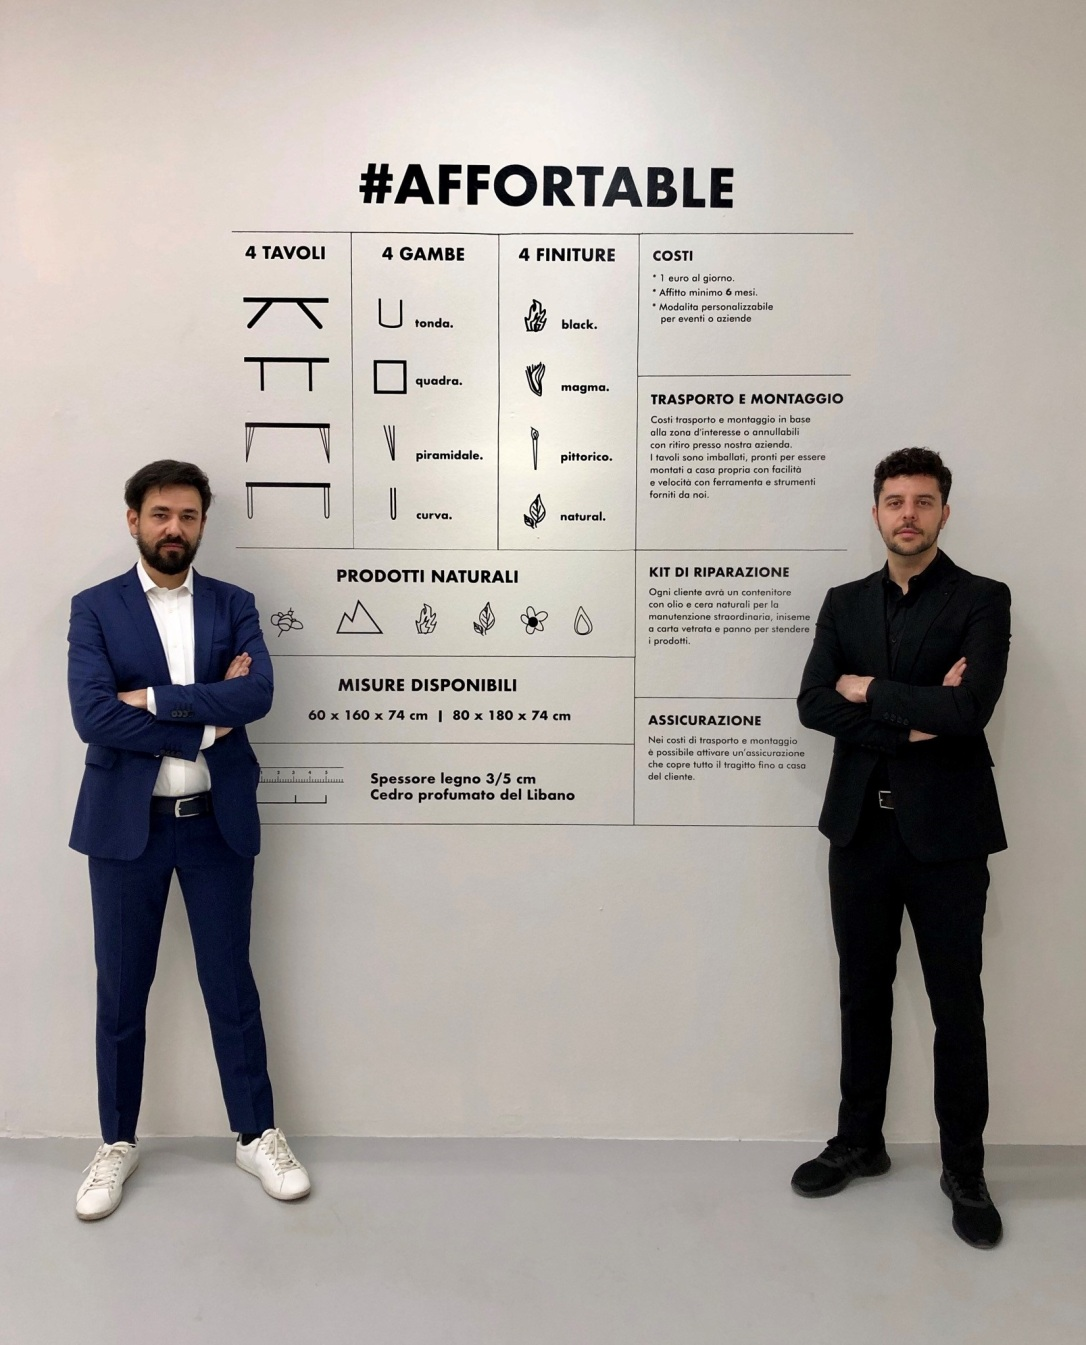 #AfforTable - Dario Brivio e Francesco Cazzaniga